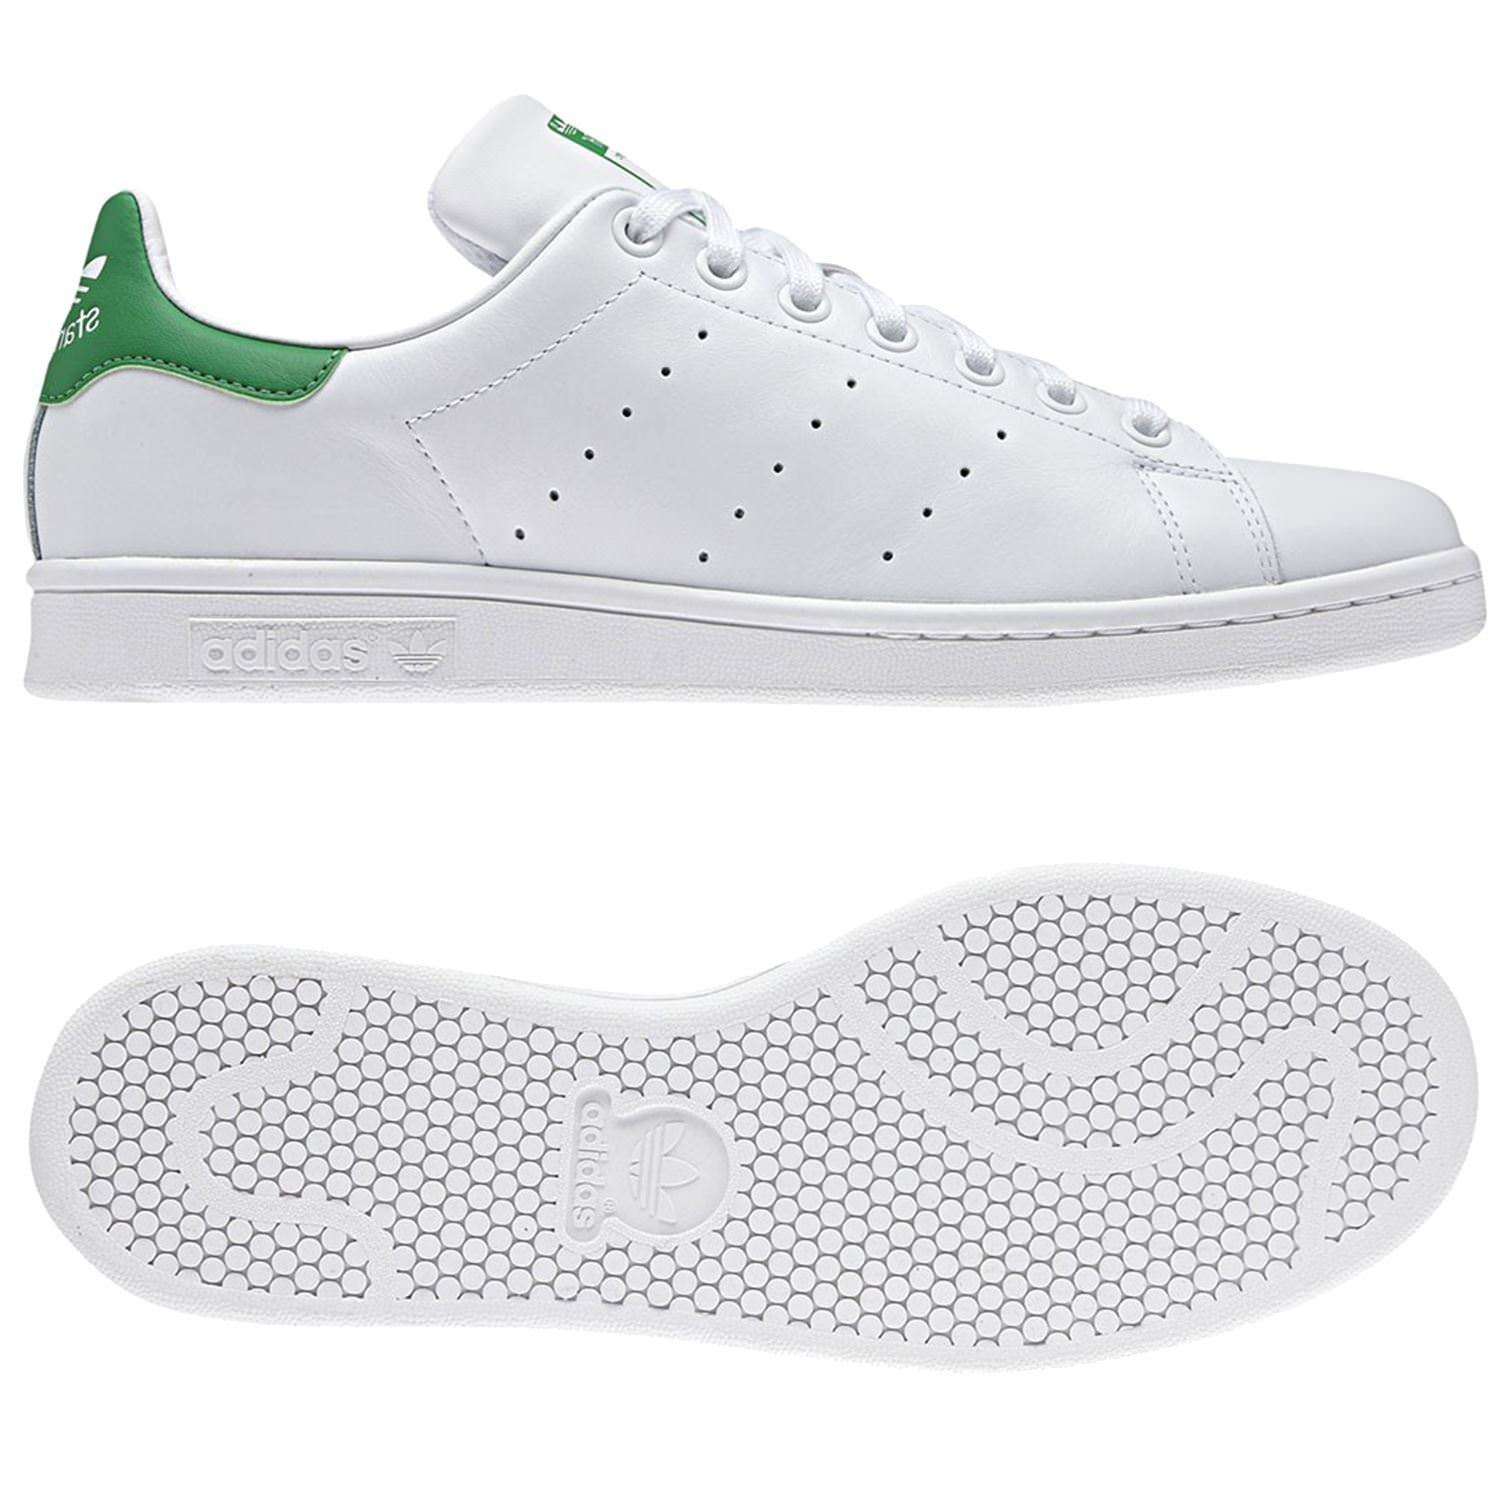 Adidas ORIGINALS MEN'S STAN SMITH WHITE GREEN SHOES SHOES SHOES LEATHER TRAINERS SNEAKERS 80b9d1